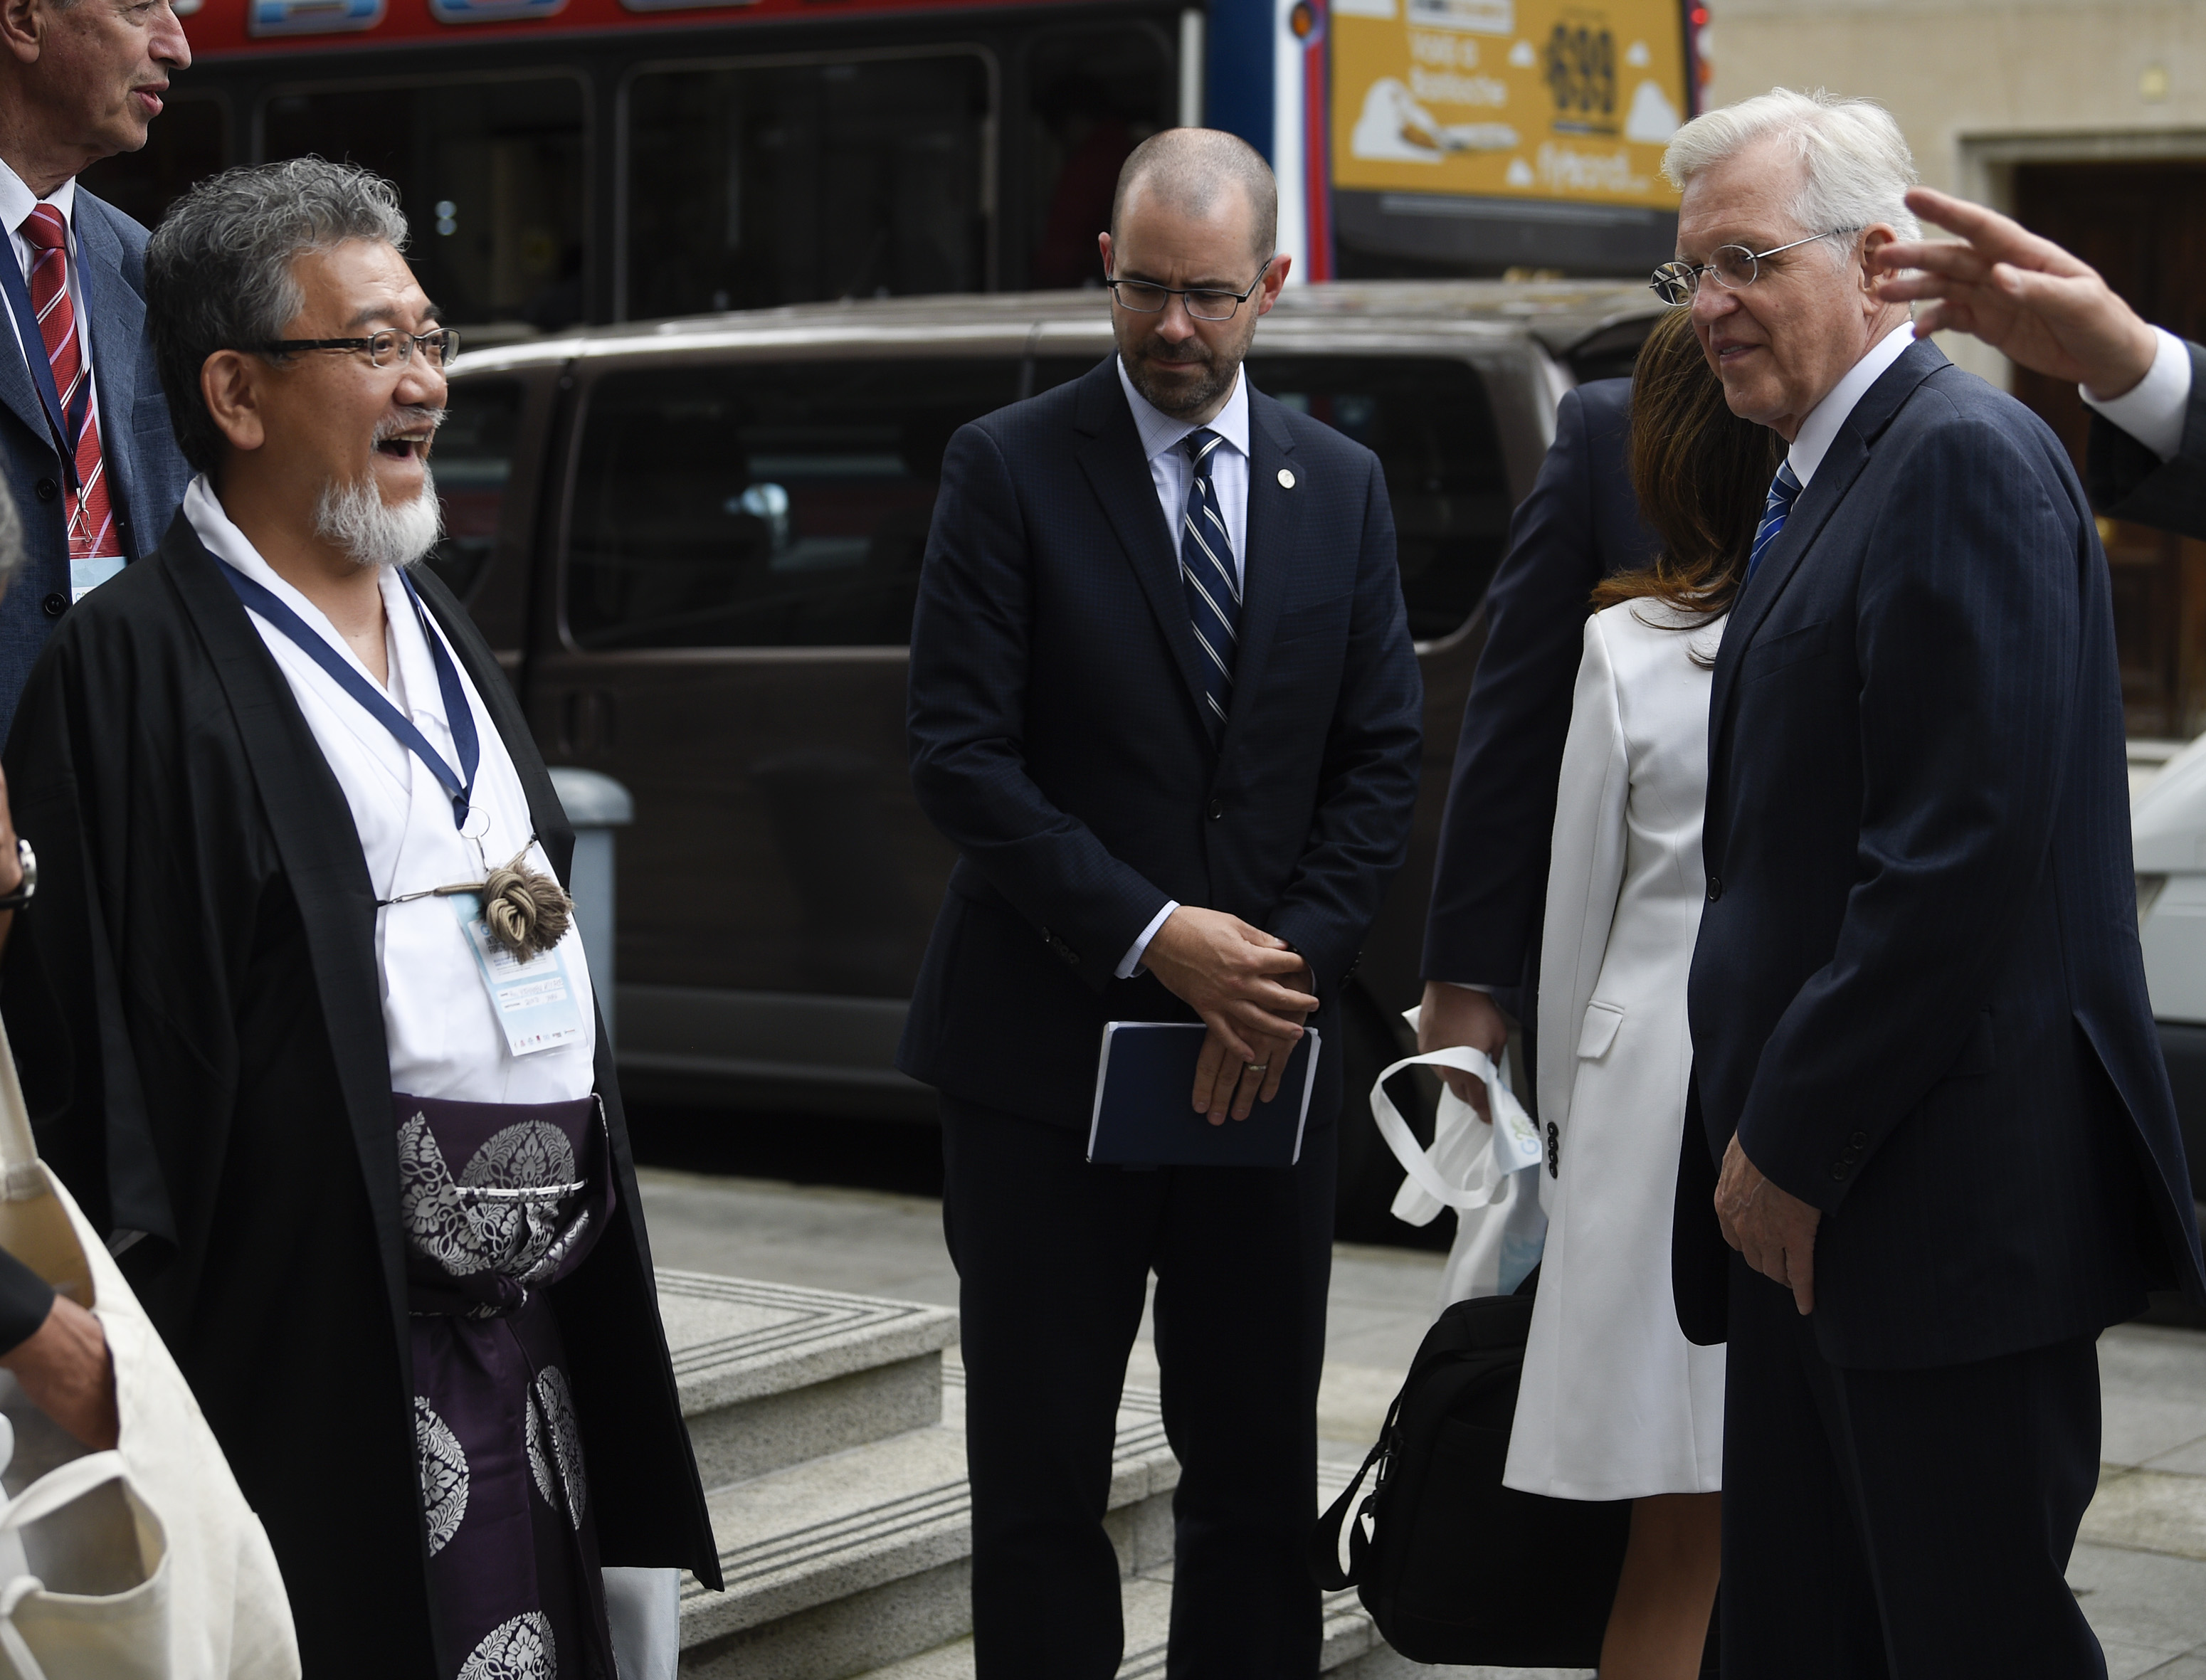 Elder D. Todd Christofferson, right, with others at the G20 Interfaith Forum in Buenos Aires, Argentina, on Wednesday, Sept. 26, 2018.